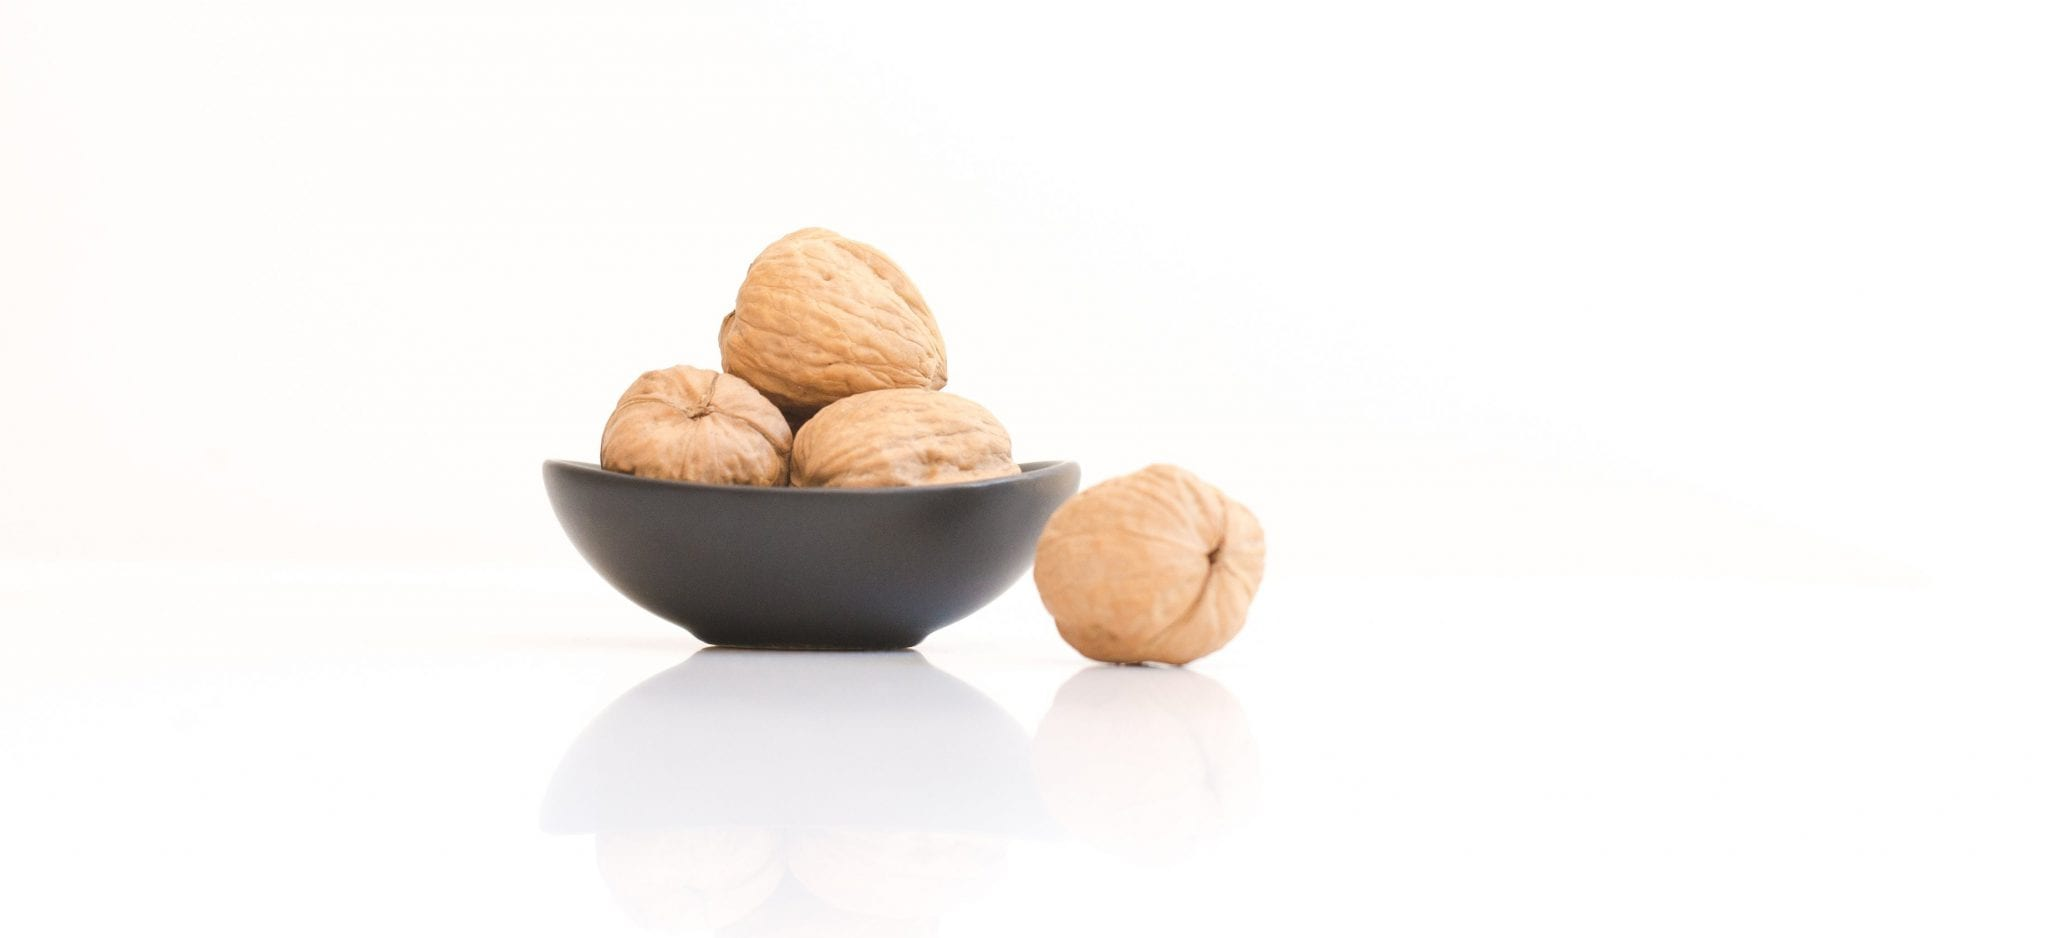 Quick healthy snack - walnuts